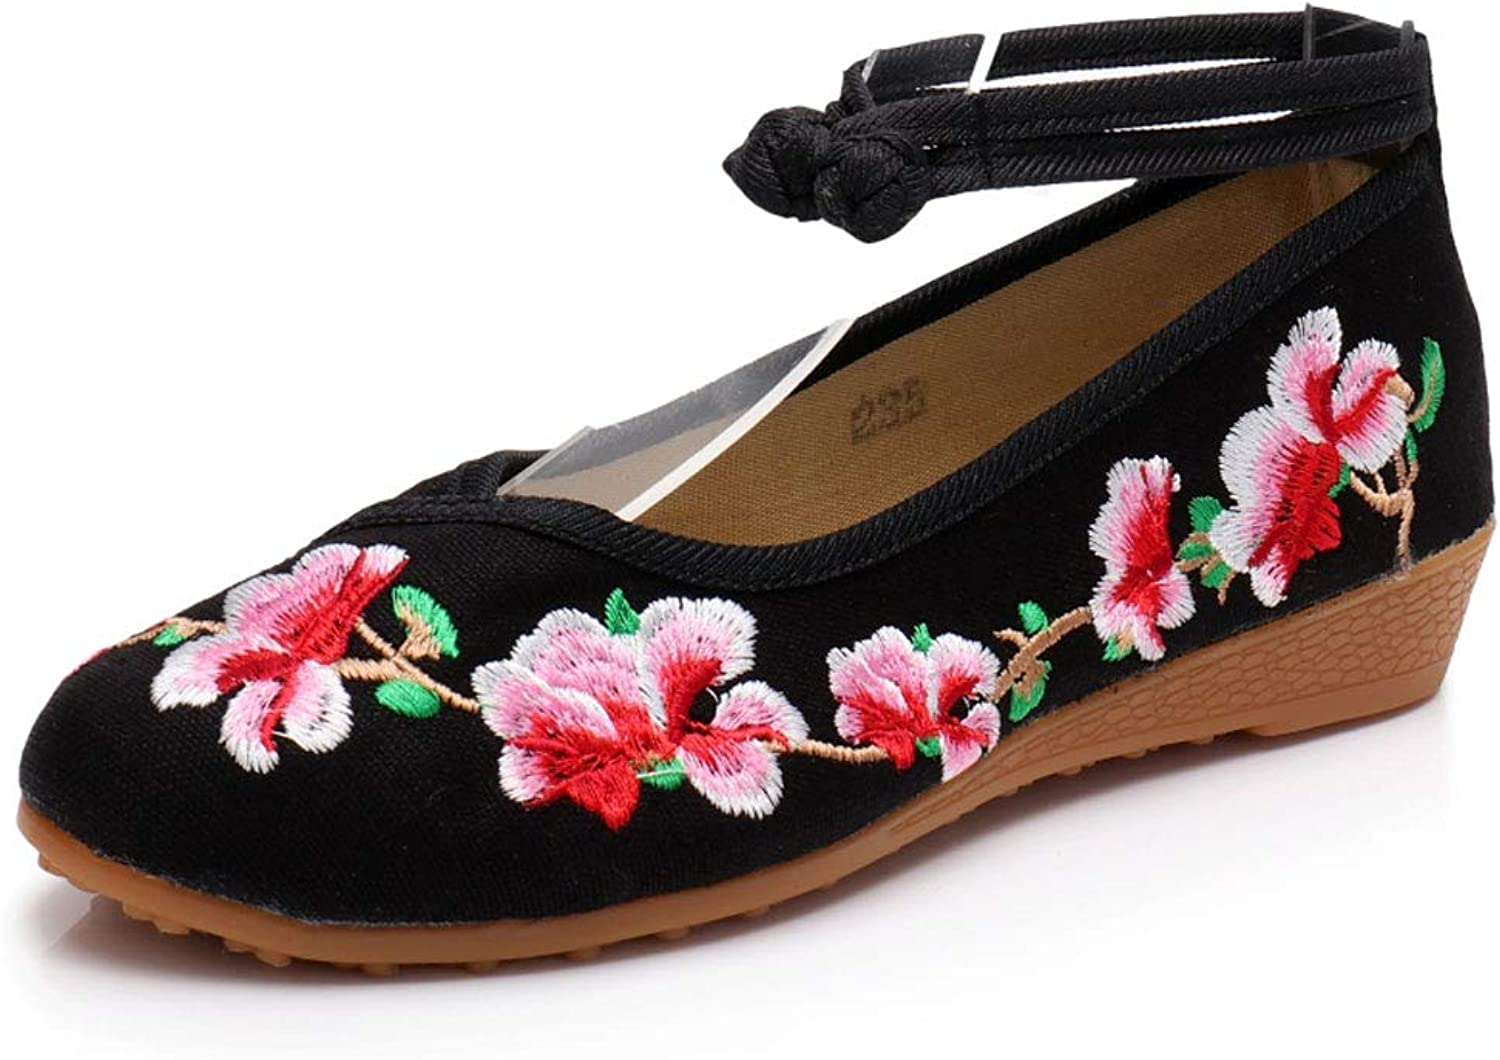 Fashion Flat Embroidery shoes Women's Vintage Embroidery Cloth shoes Wedge Casual shoes National Style (color   Black, Size   37)